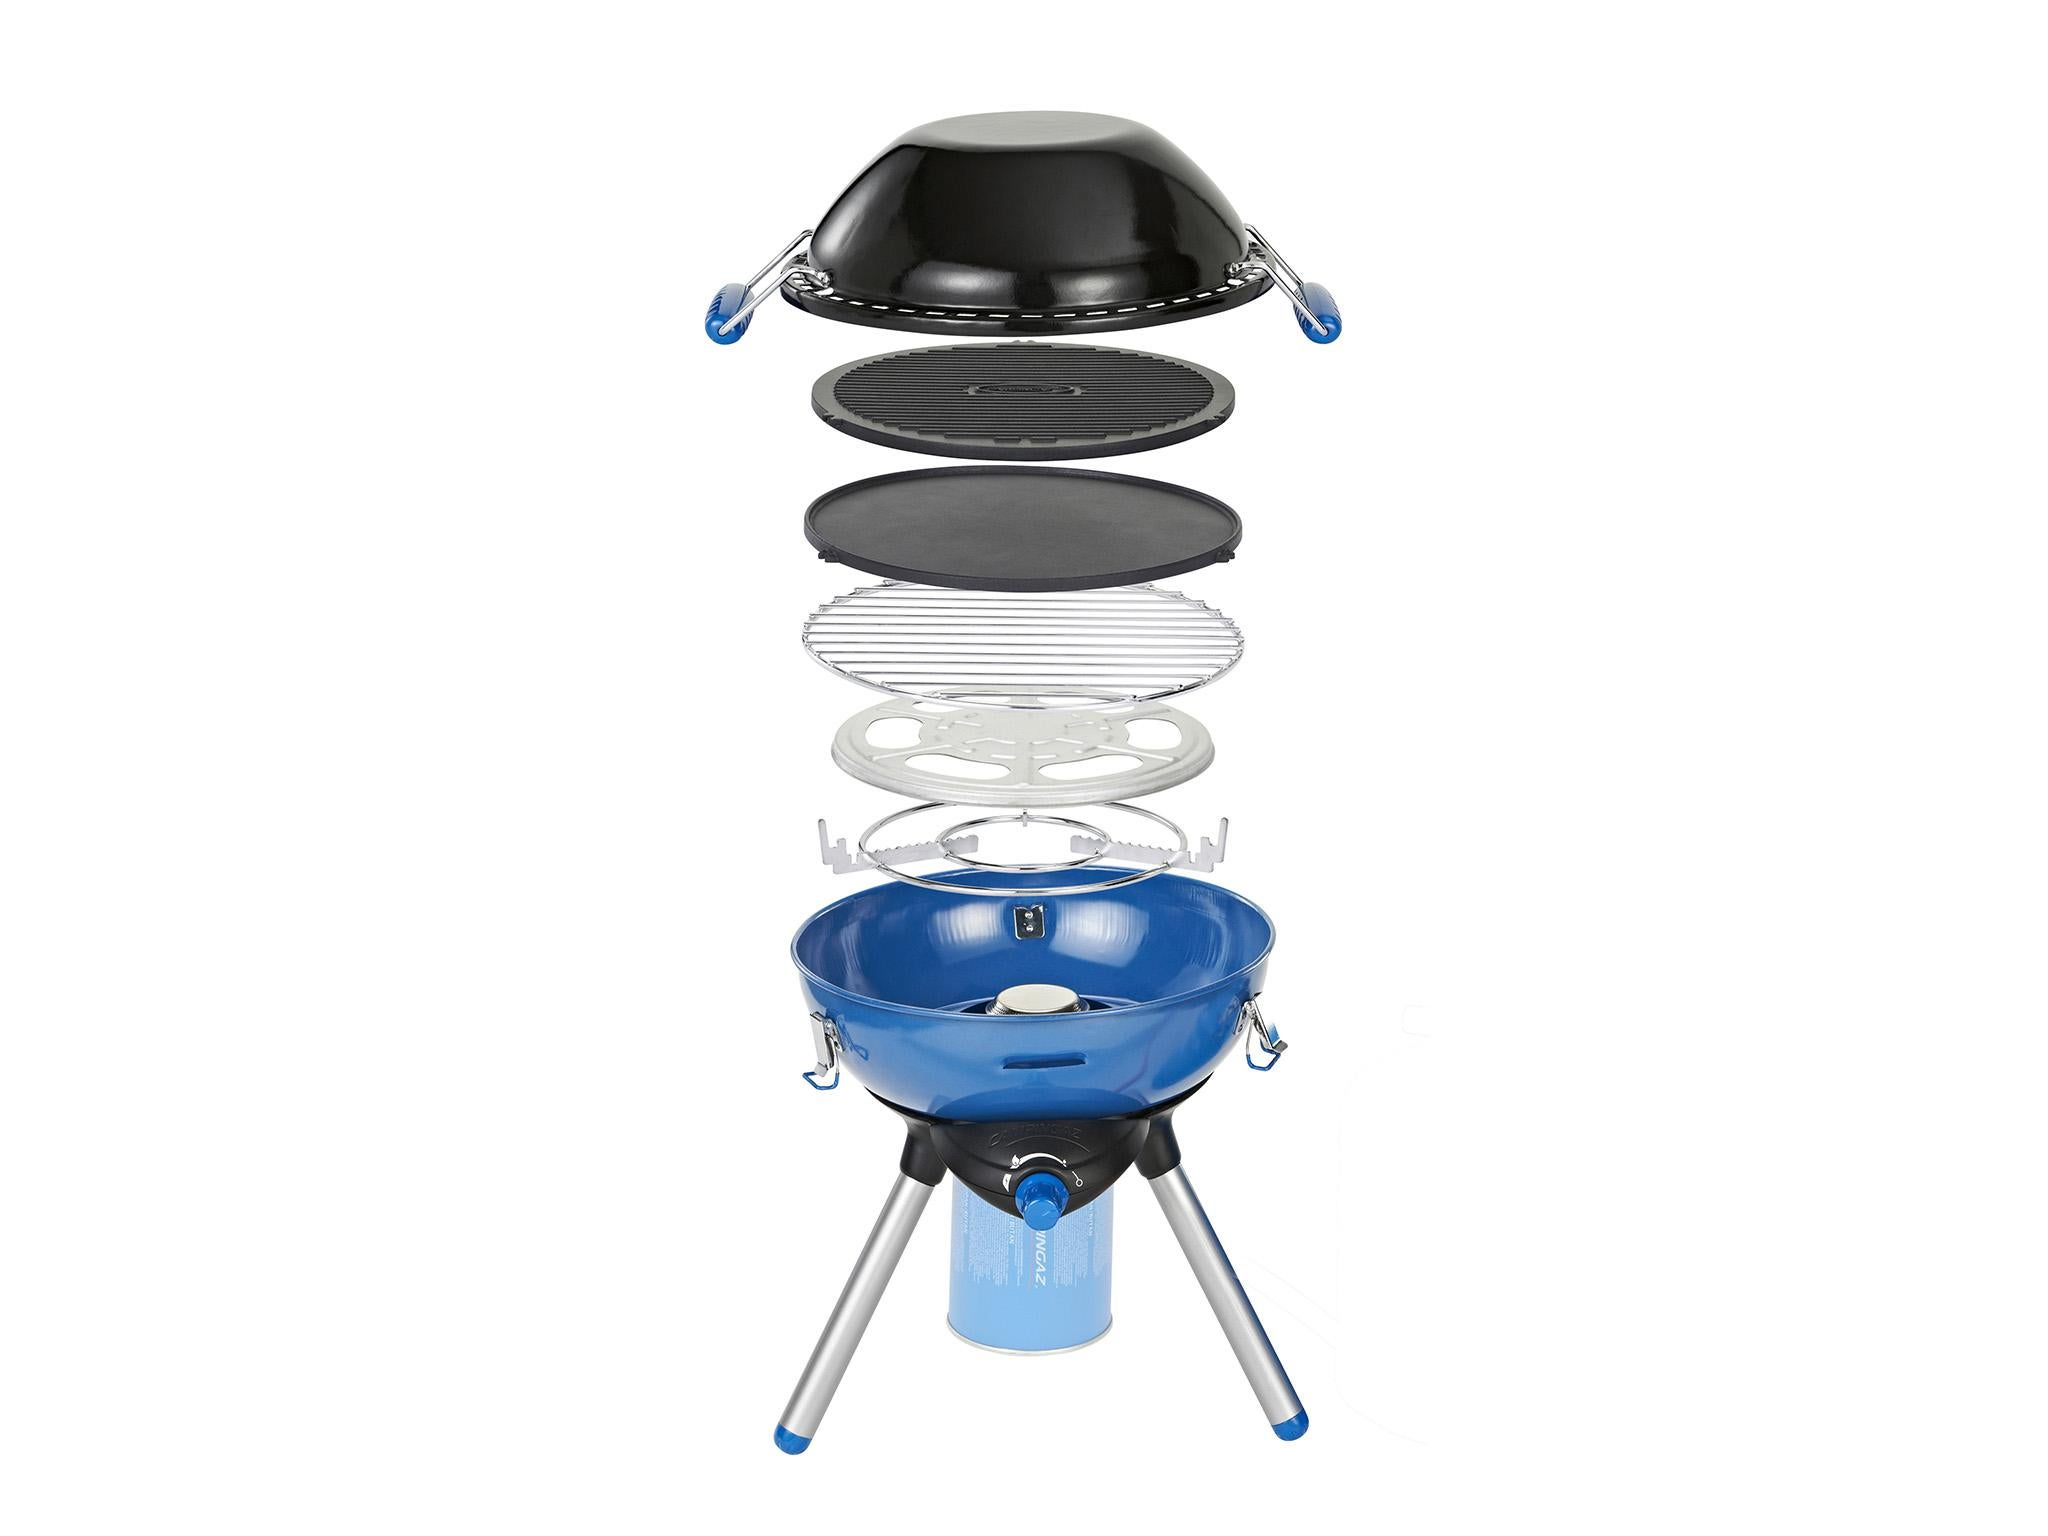 9 best camping cooking gear products that are lightweight